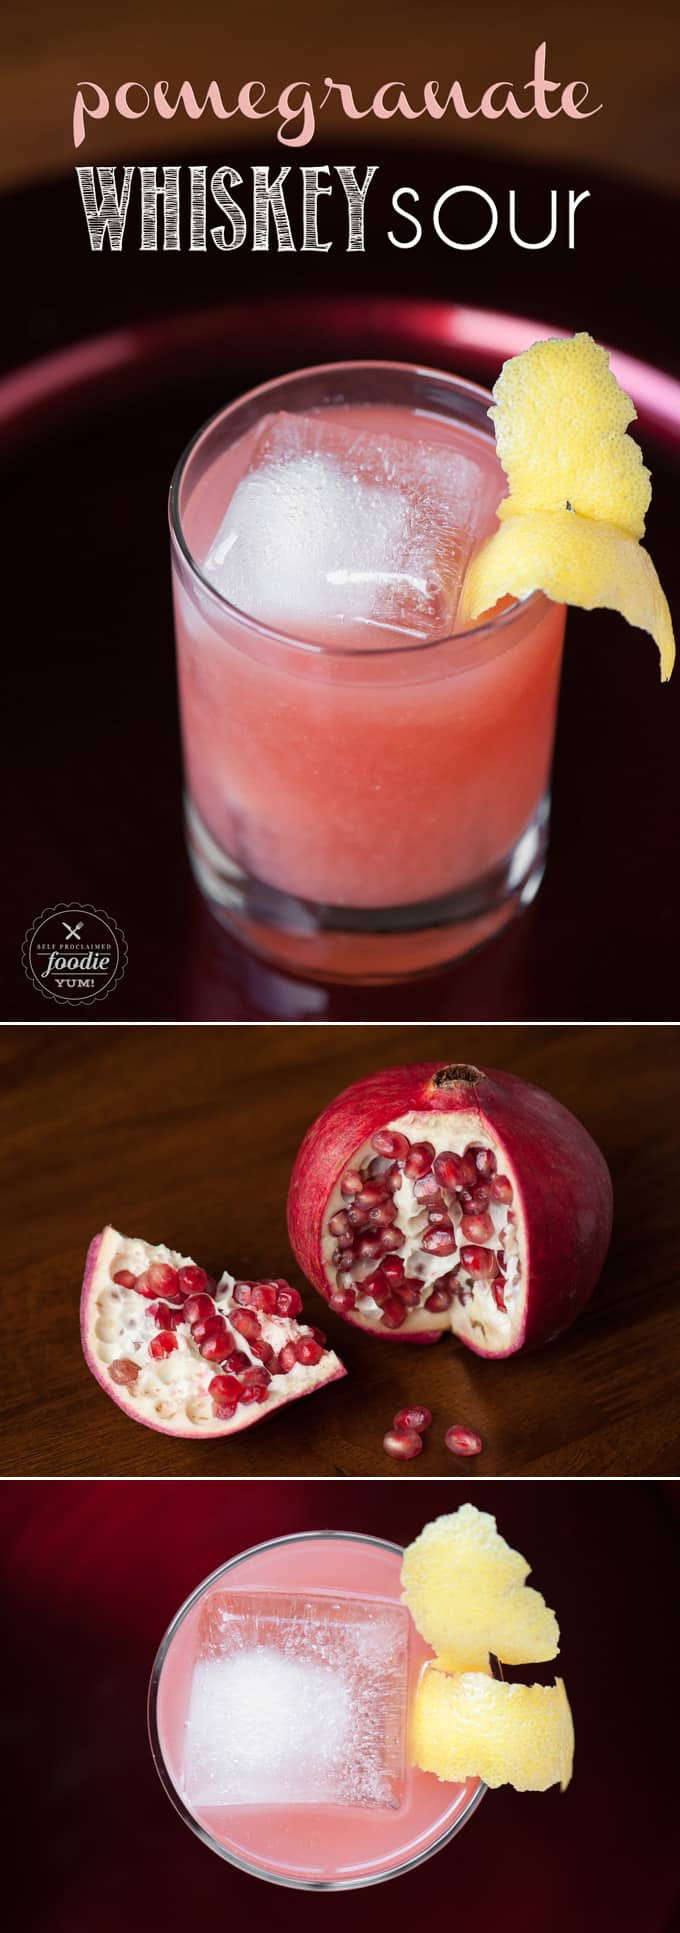 If you want a lip smacking cocktail that's perfect for the winter holidays, mix up an easy to make Pomegranate Whiskey Sour.